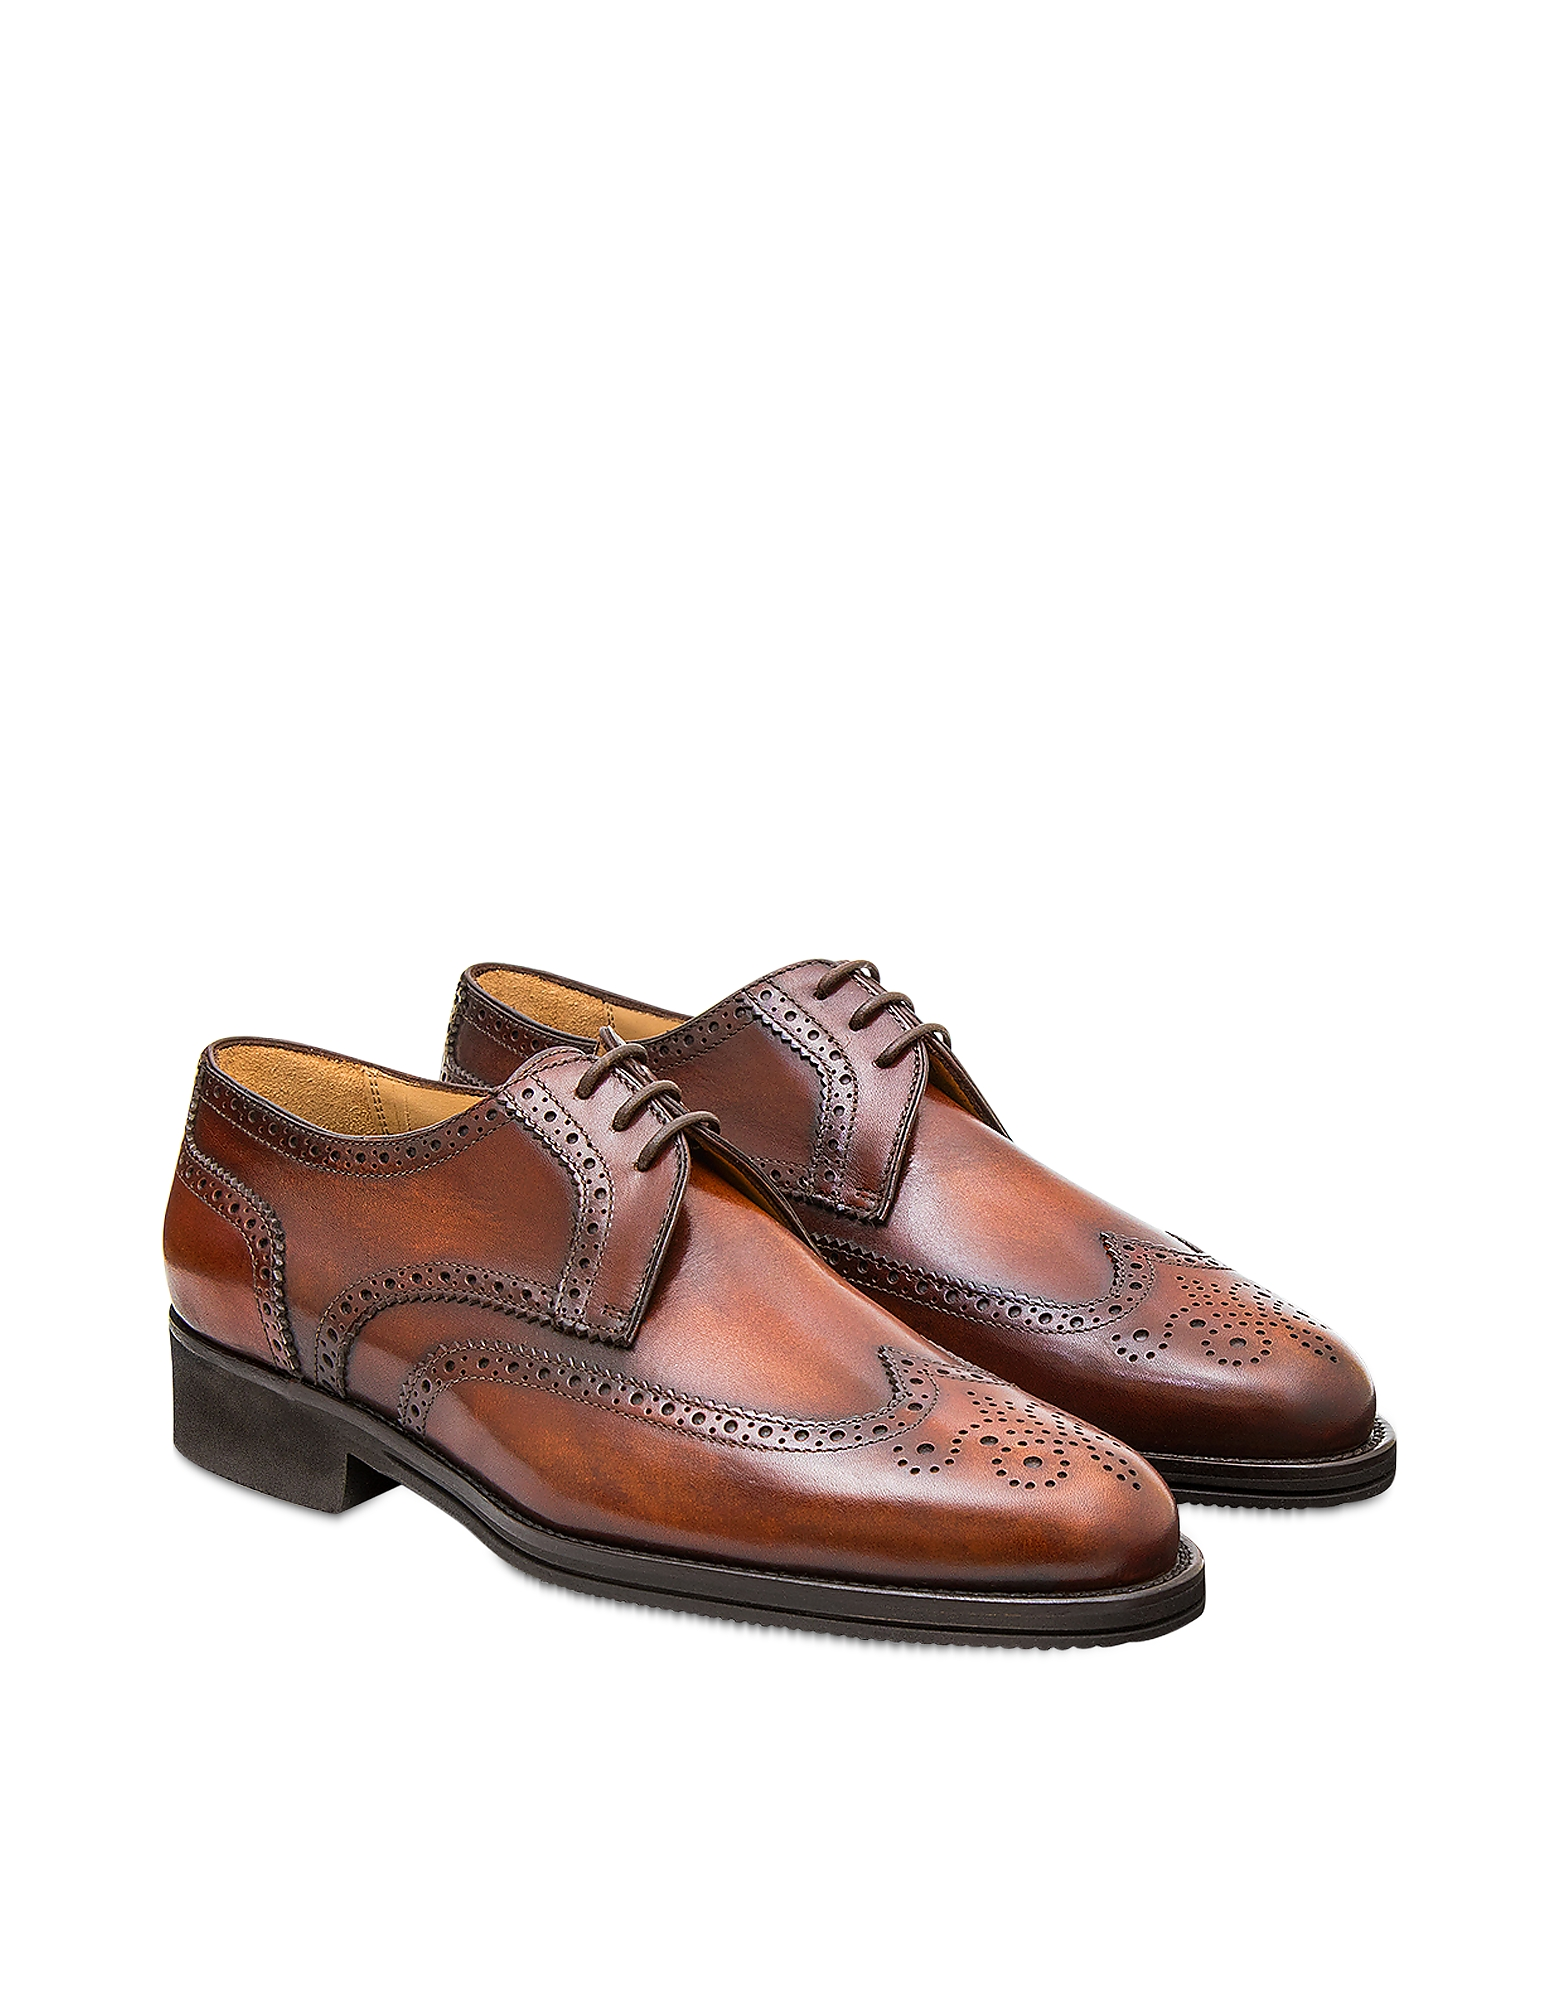 Pakerson Designer Shoes, Wood Pisa Derby Shoe